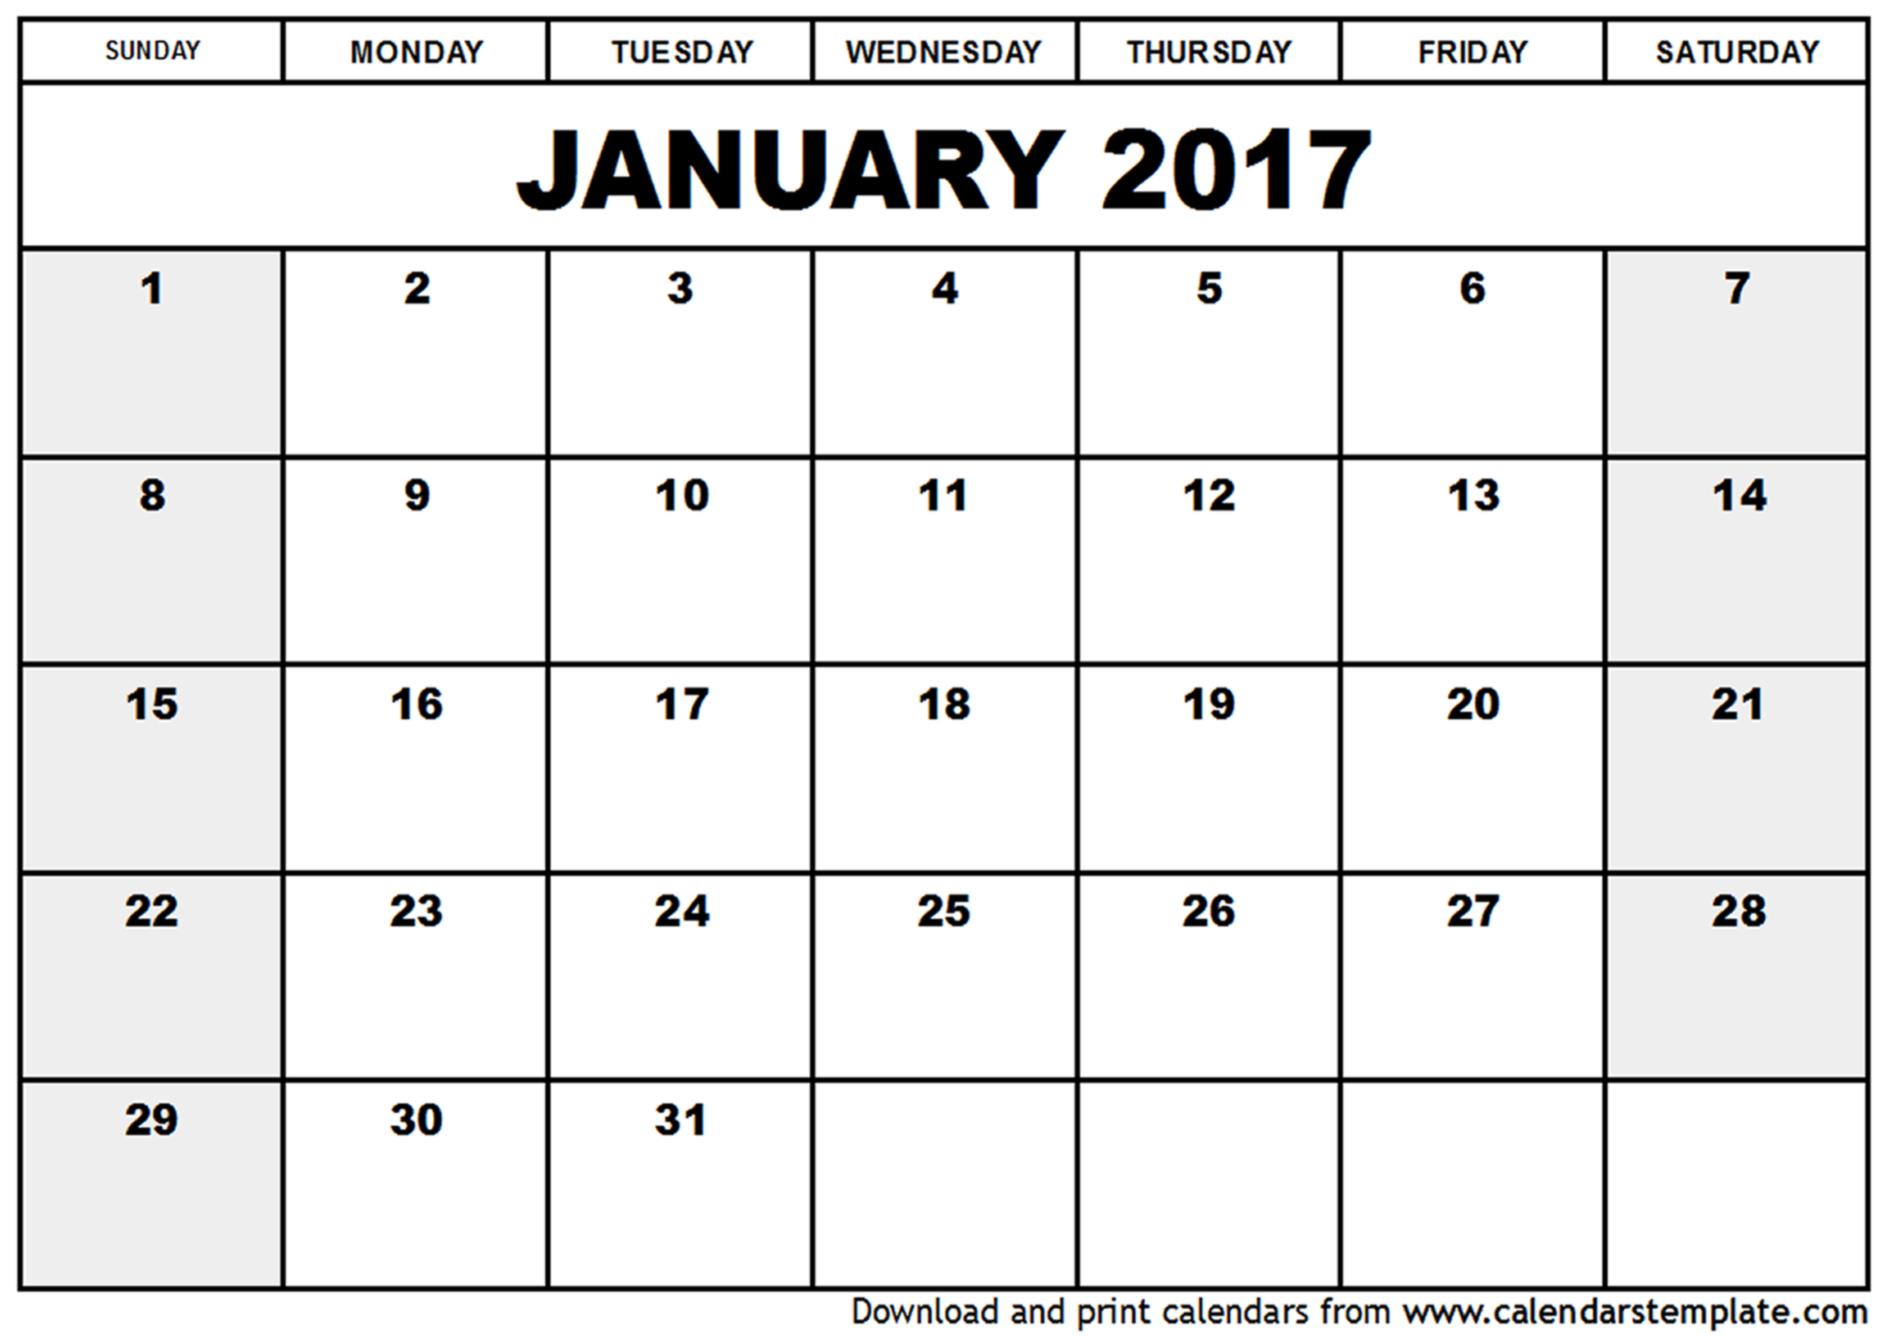 Free Printable January 2017 Calendar Word PDF Doc Excel Notes